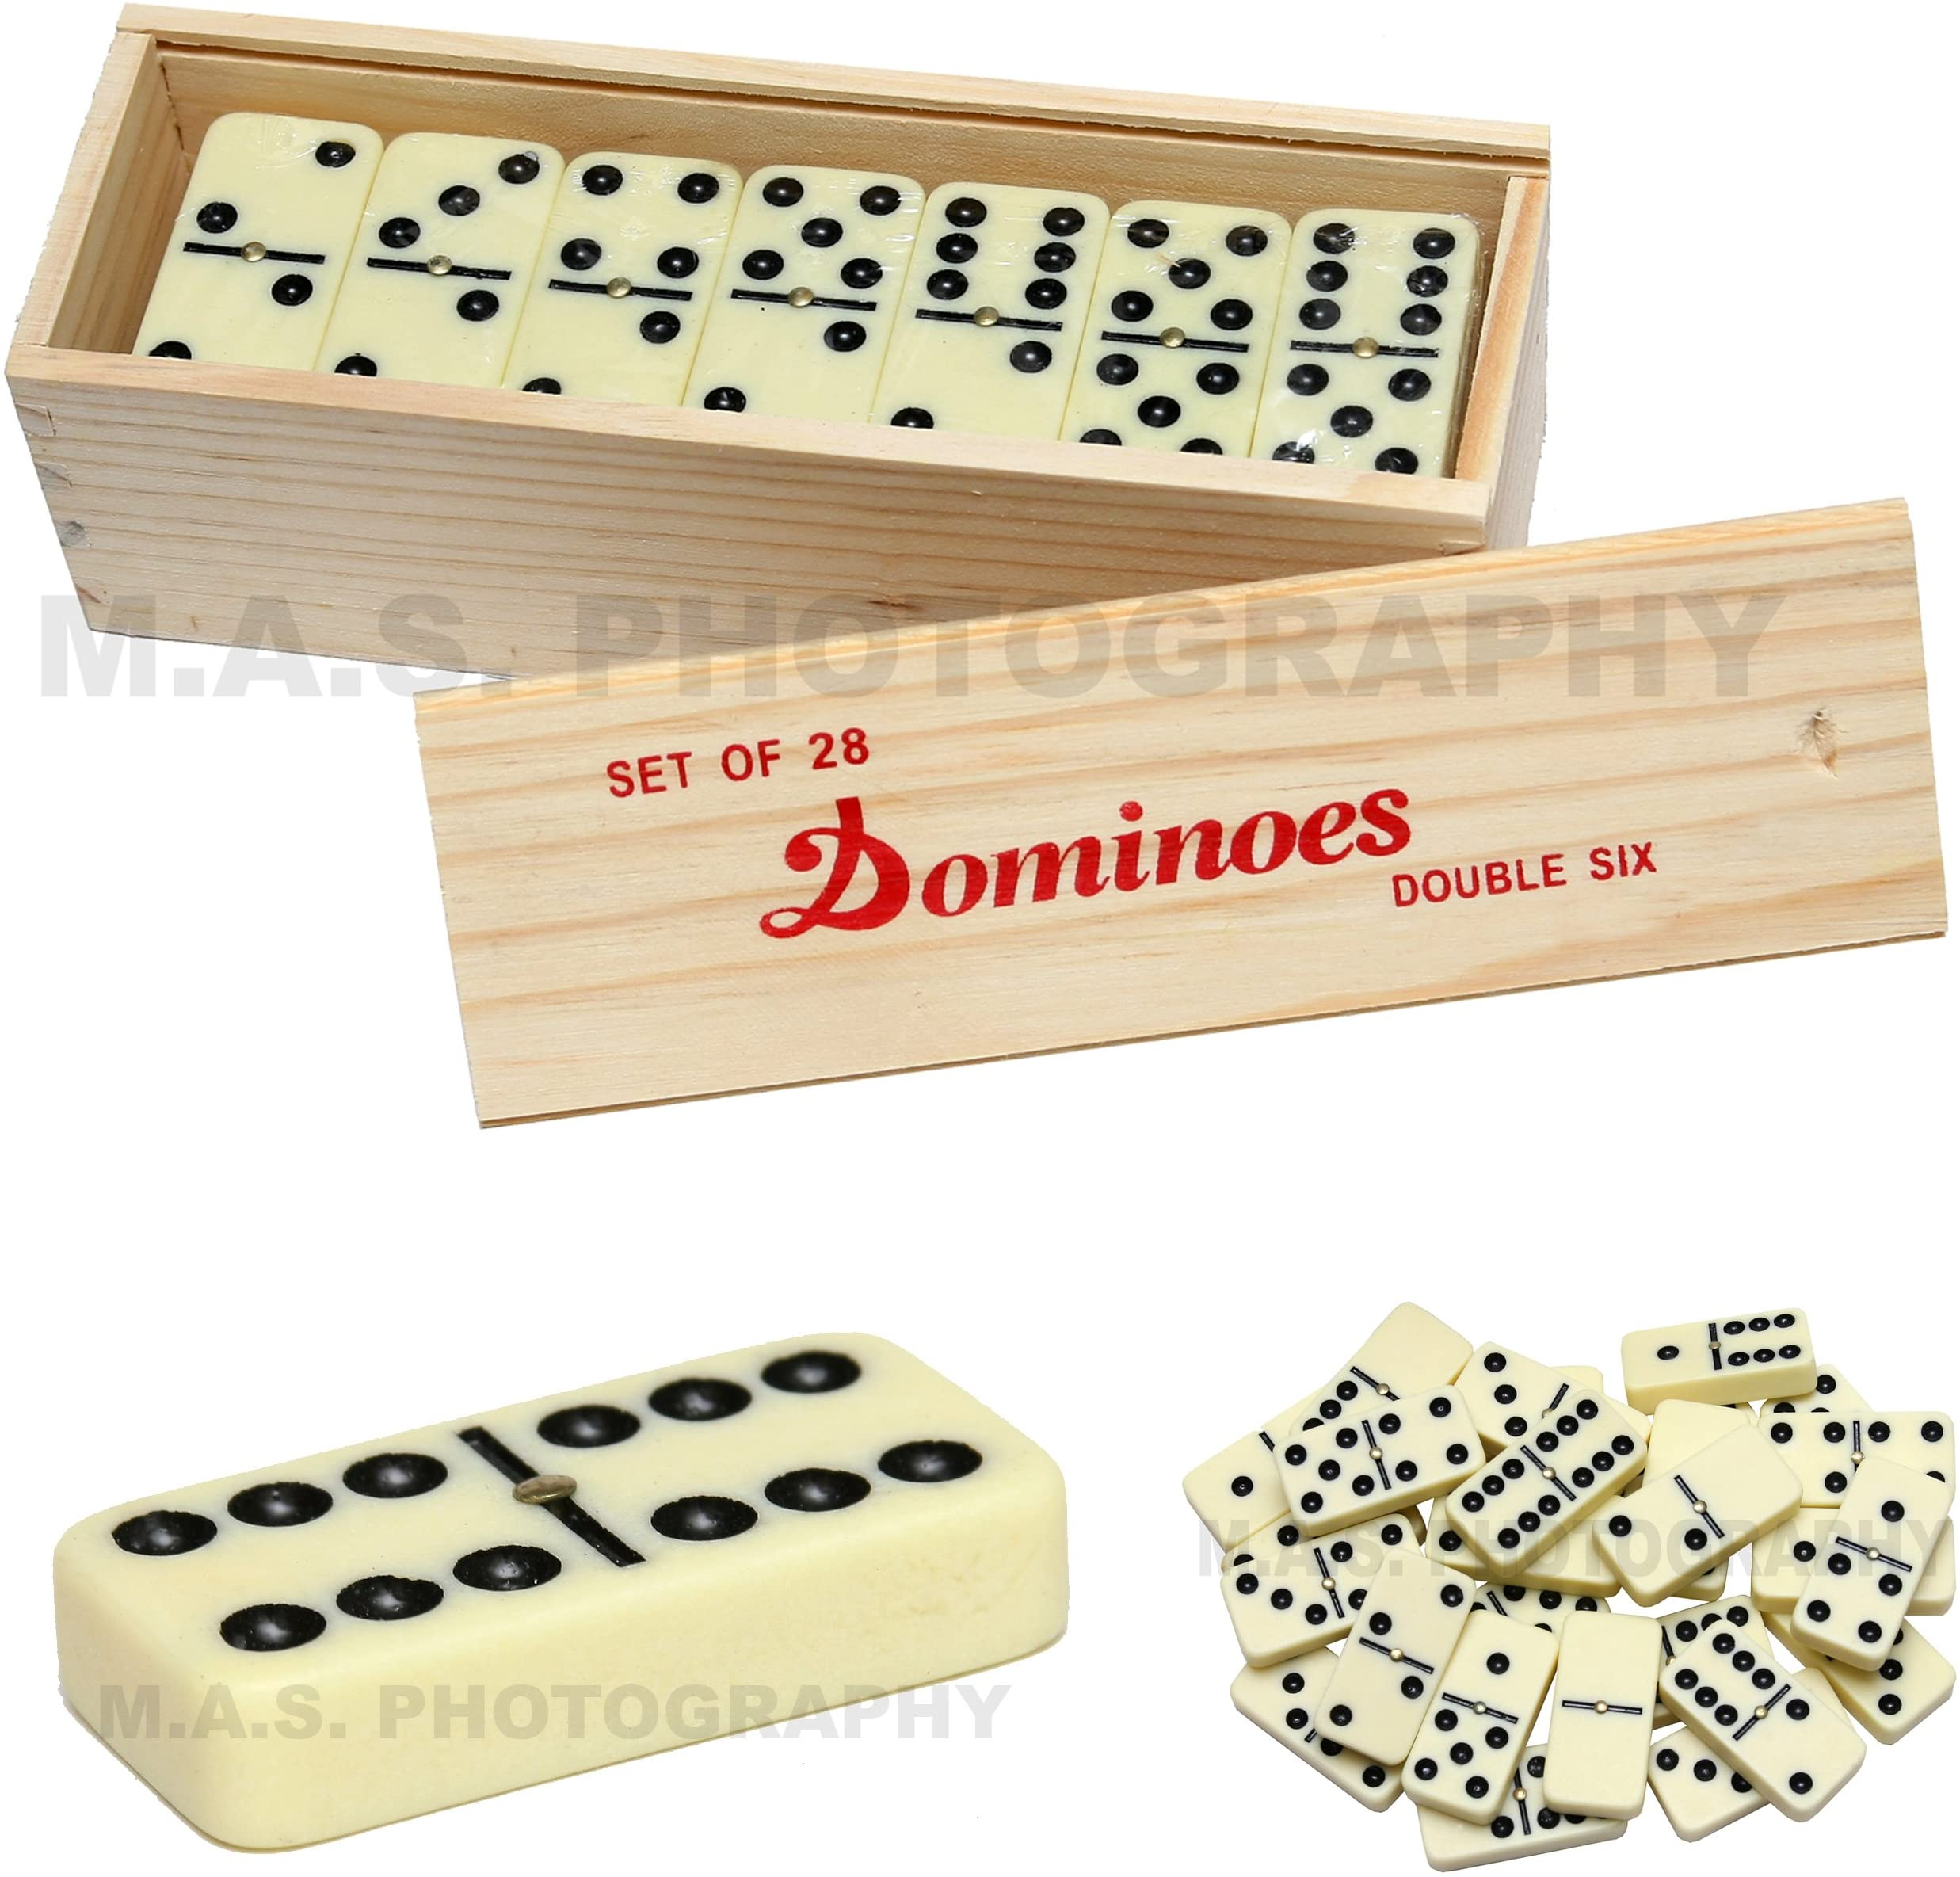 JUMBO size Double 6 - TWO TONE Dominoes in Aluminum Case w// Spinner peg 28